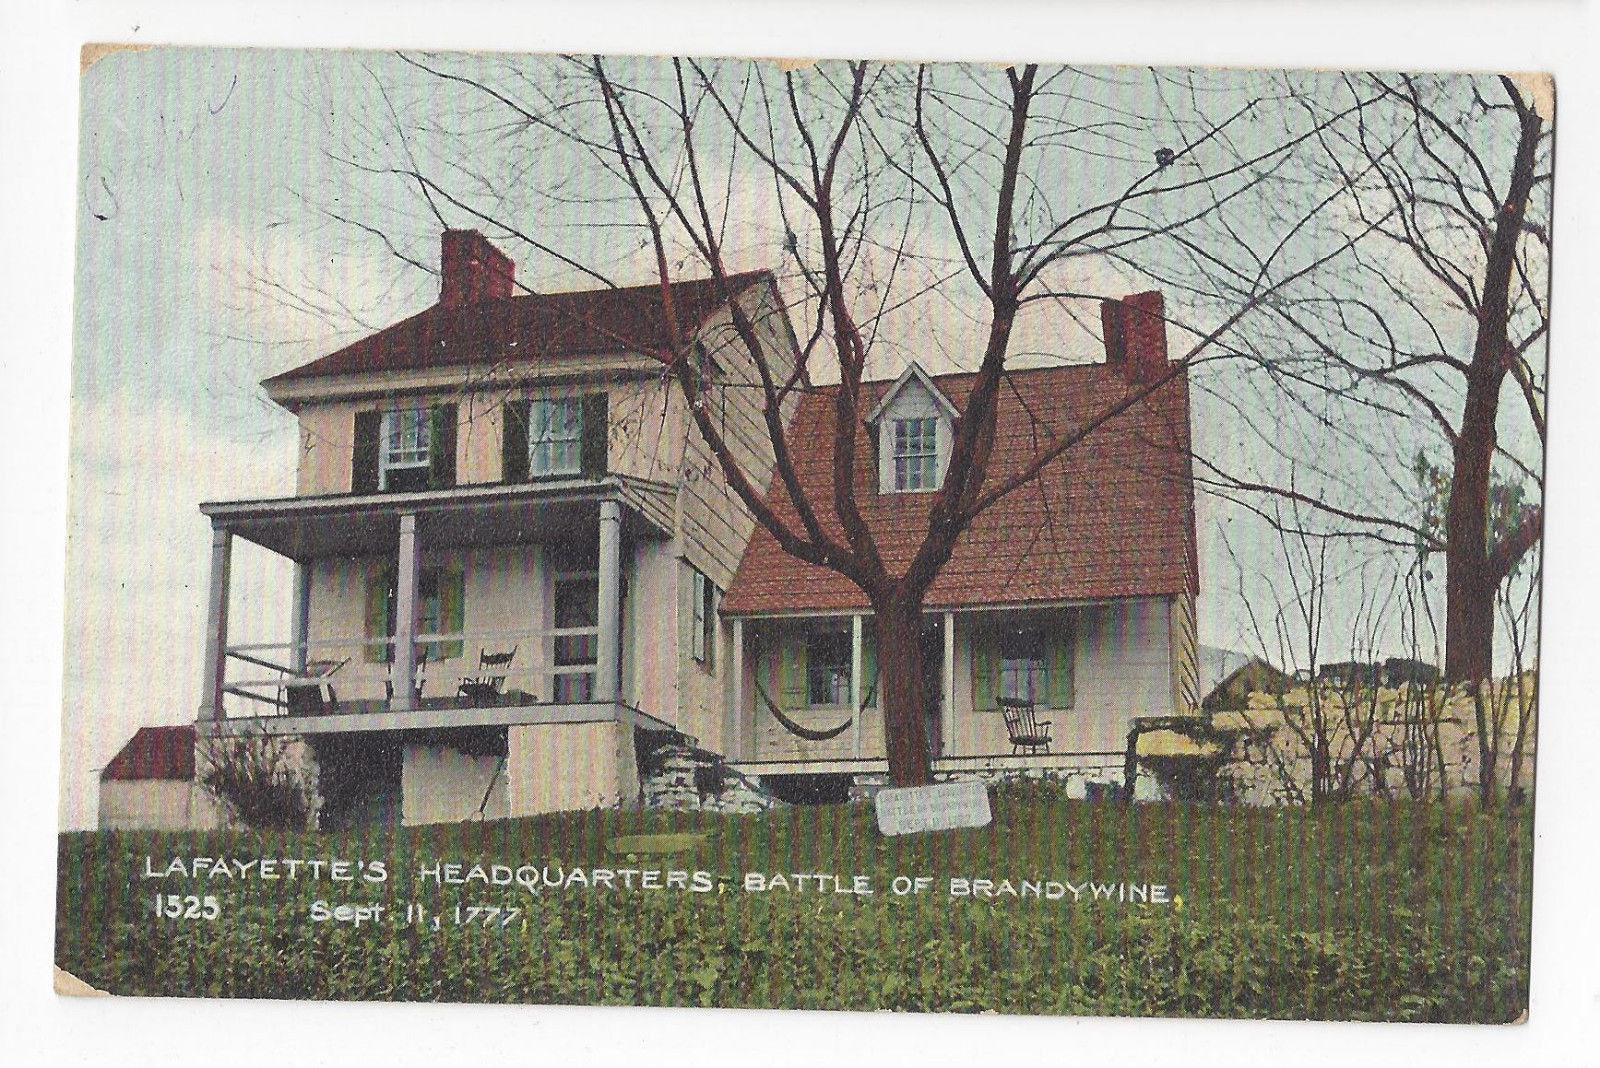 PA Chadds Ford Lafayette's Headquarters ca 1910 Postcard Battle of Brandywine